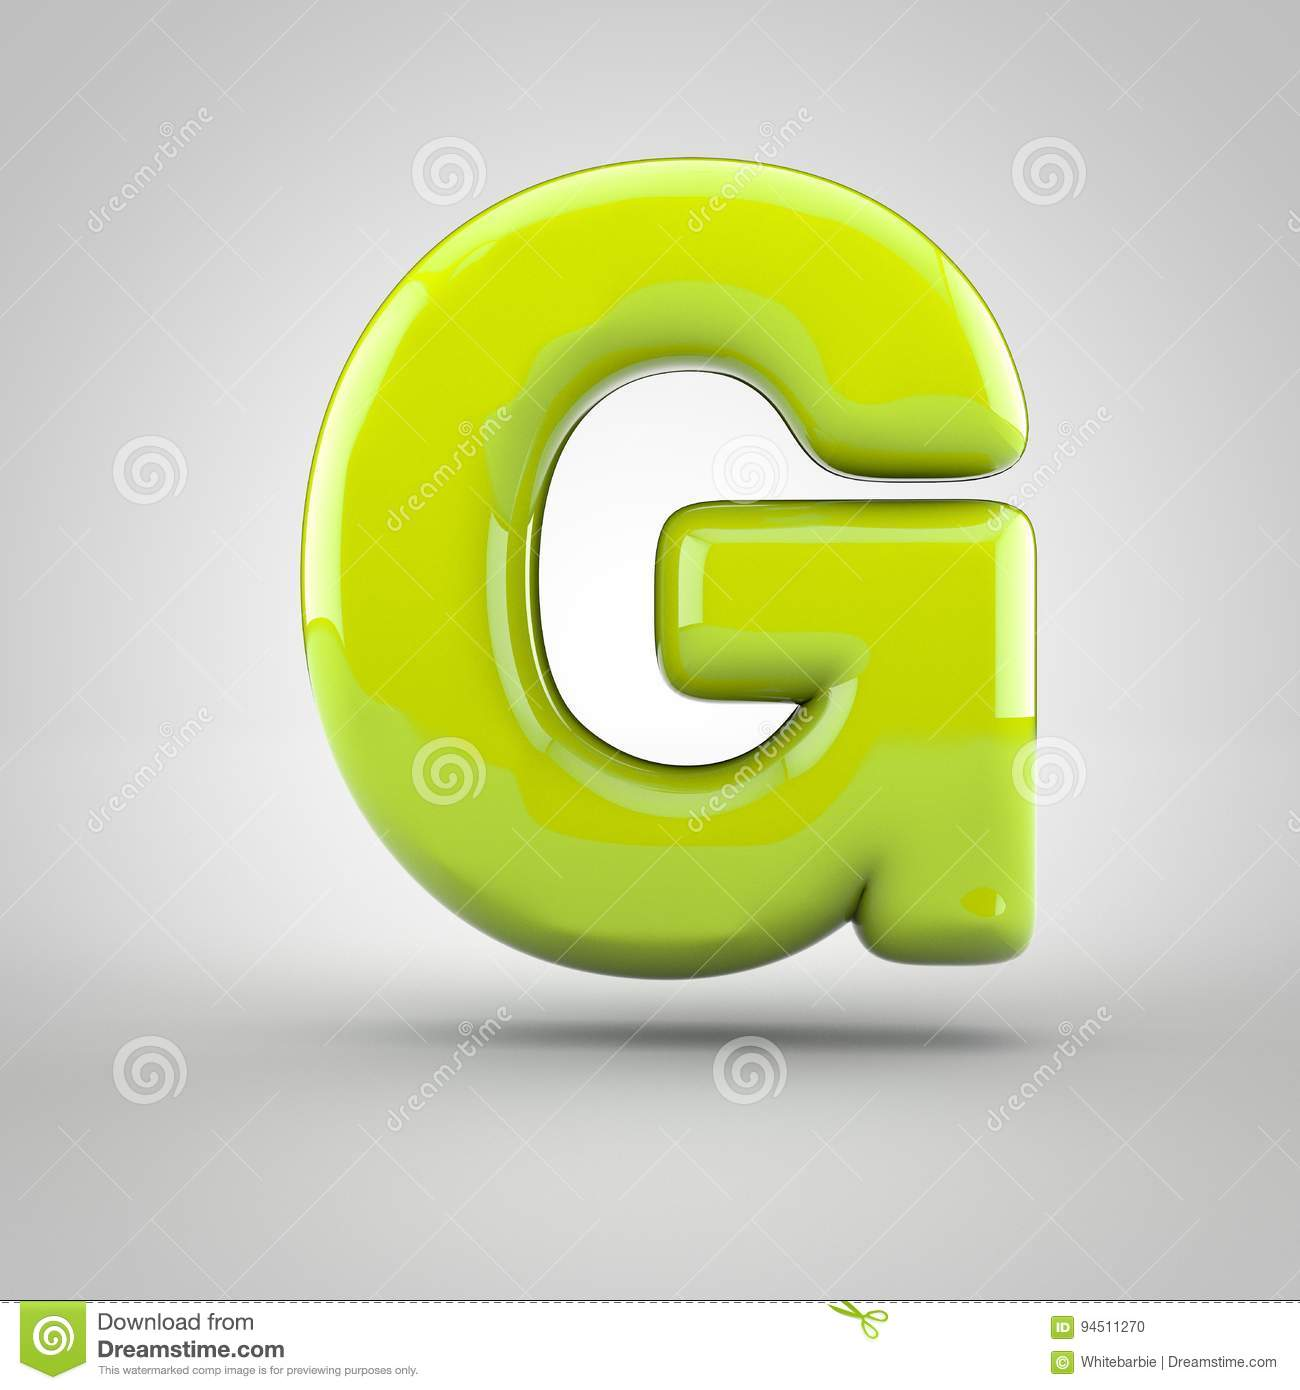 glossy-lime-paint-letter-g-uppercase-white-background-d-render-bubble-font-glint-94511270.jpg